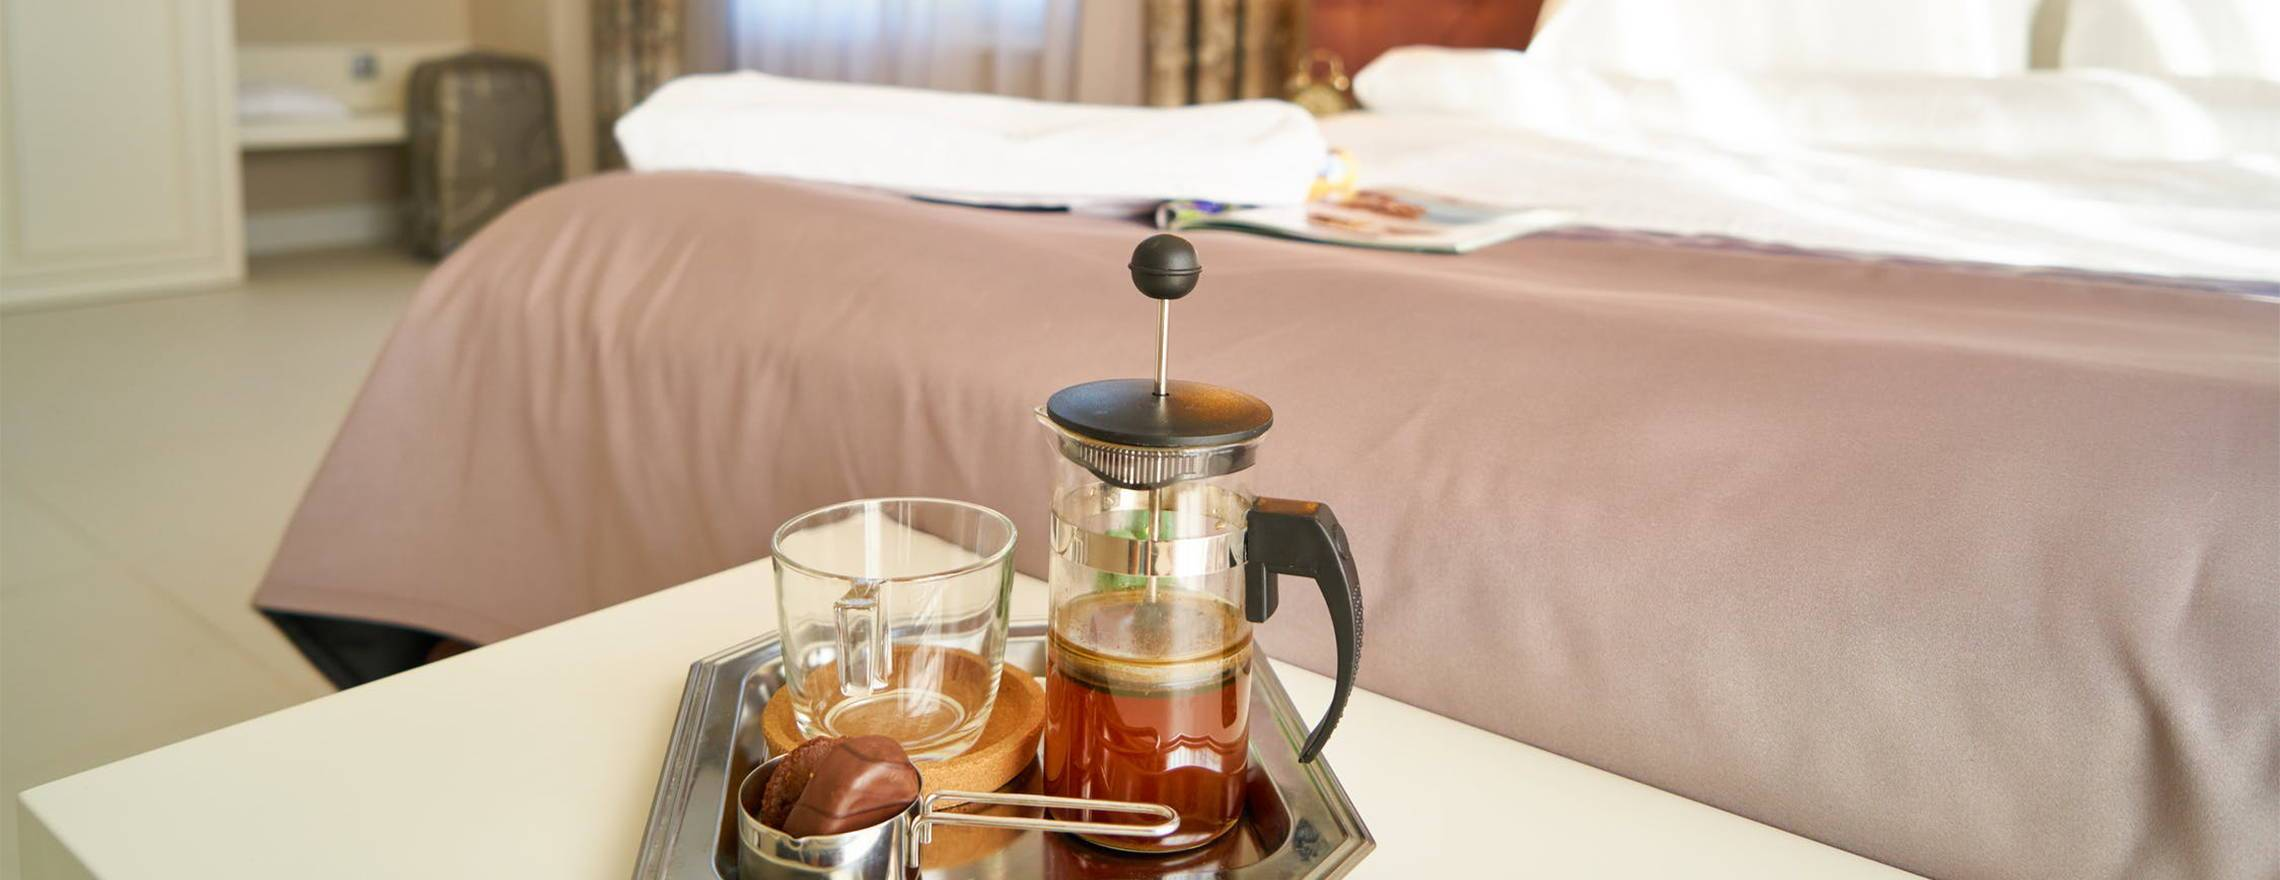 coffee_or_tea_serving_tray_in_a_comfortable_room_with_a_leesa_mattress